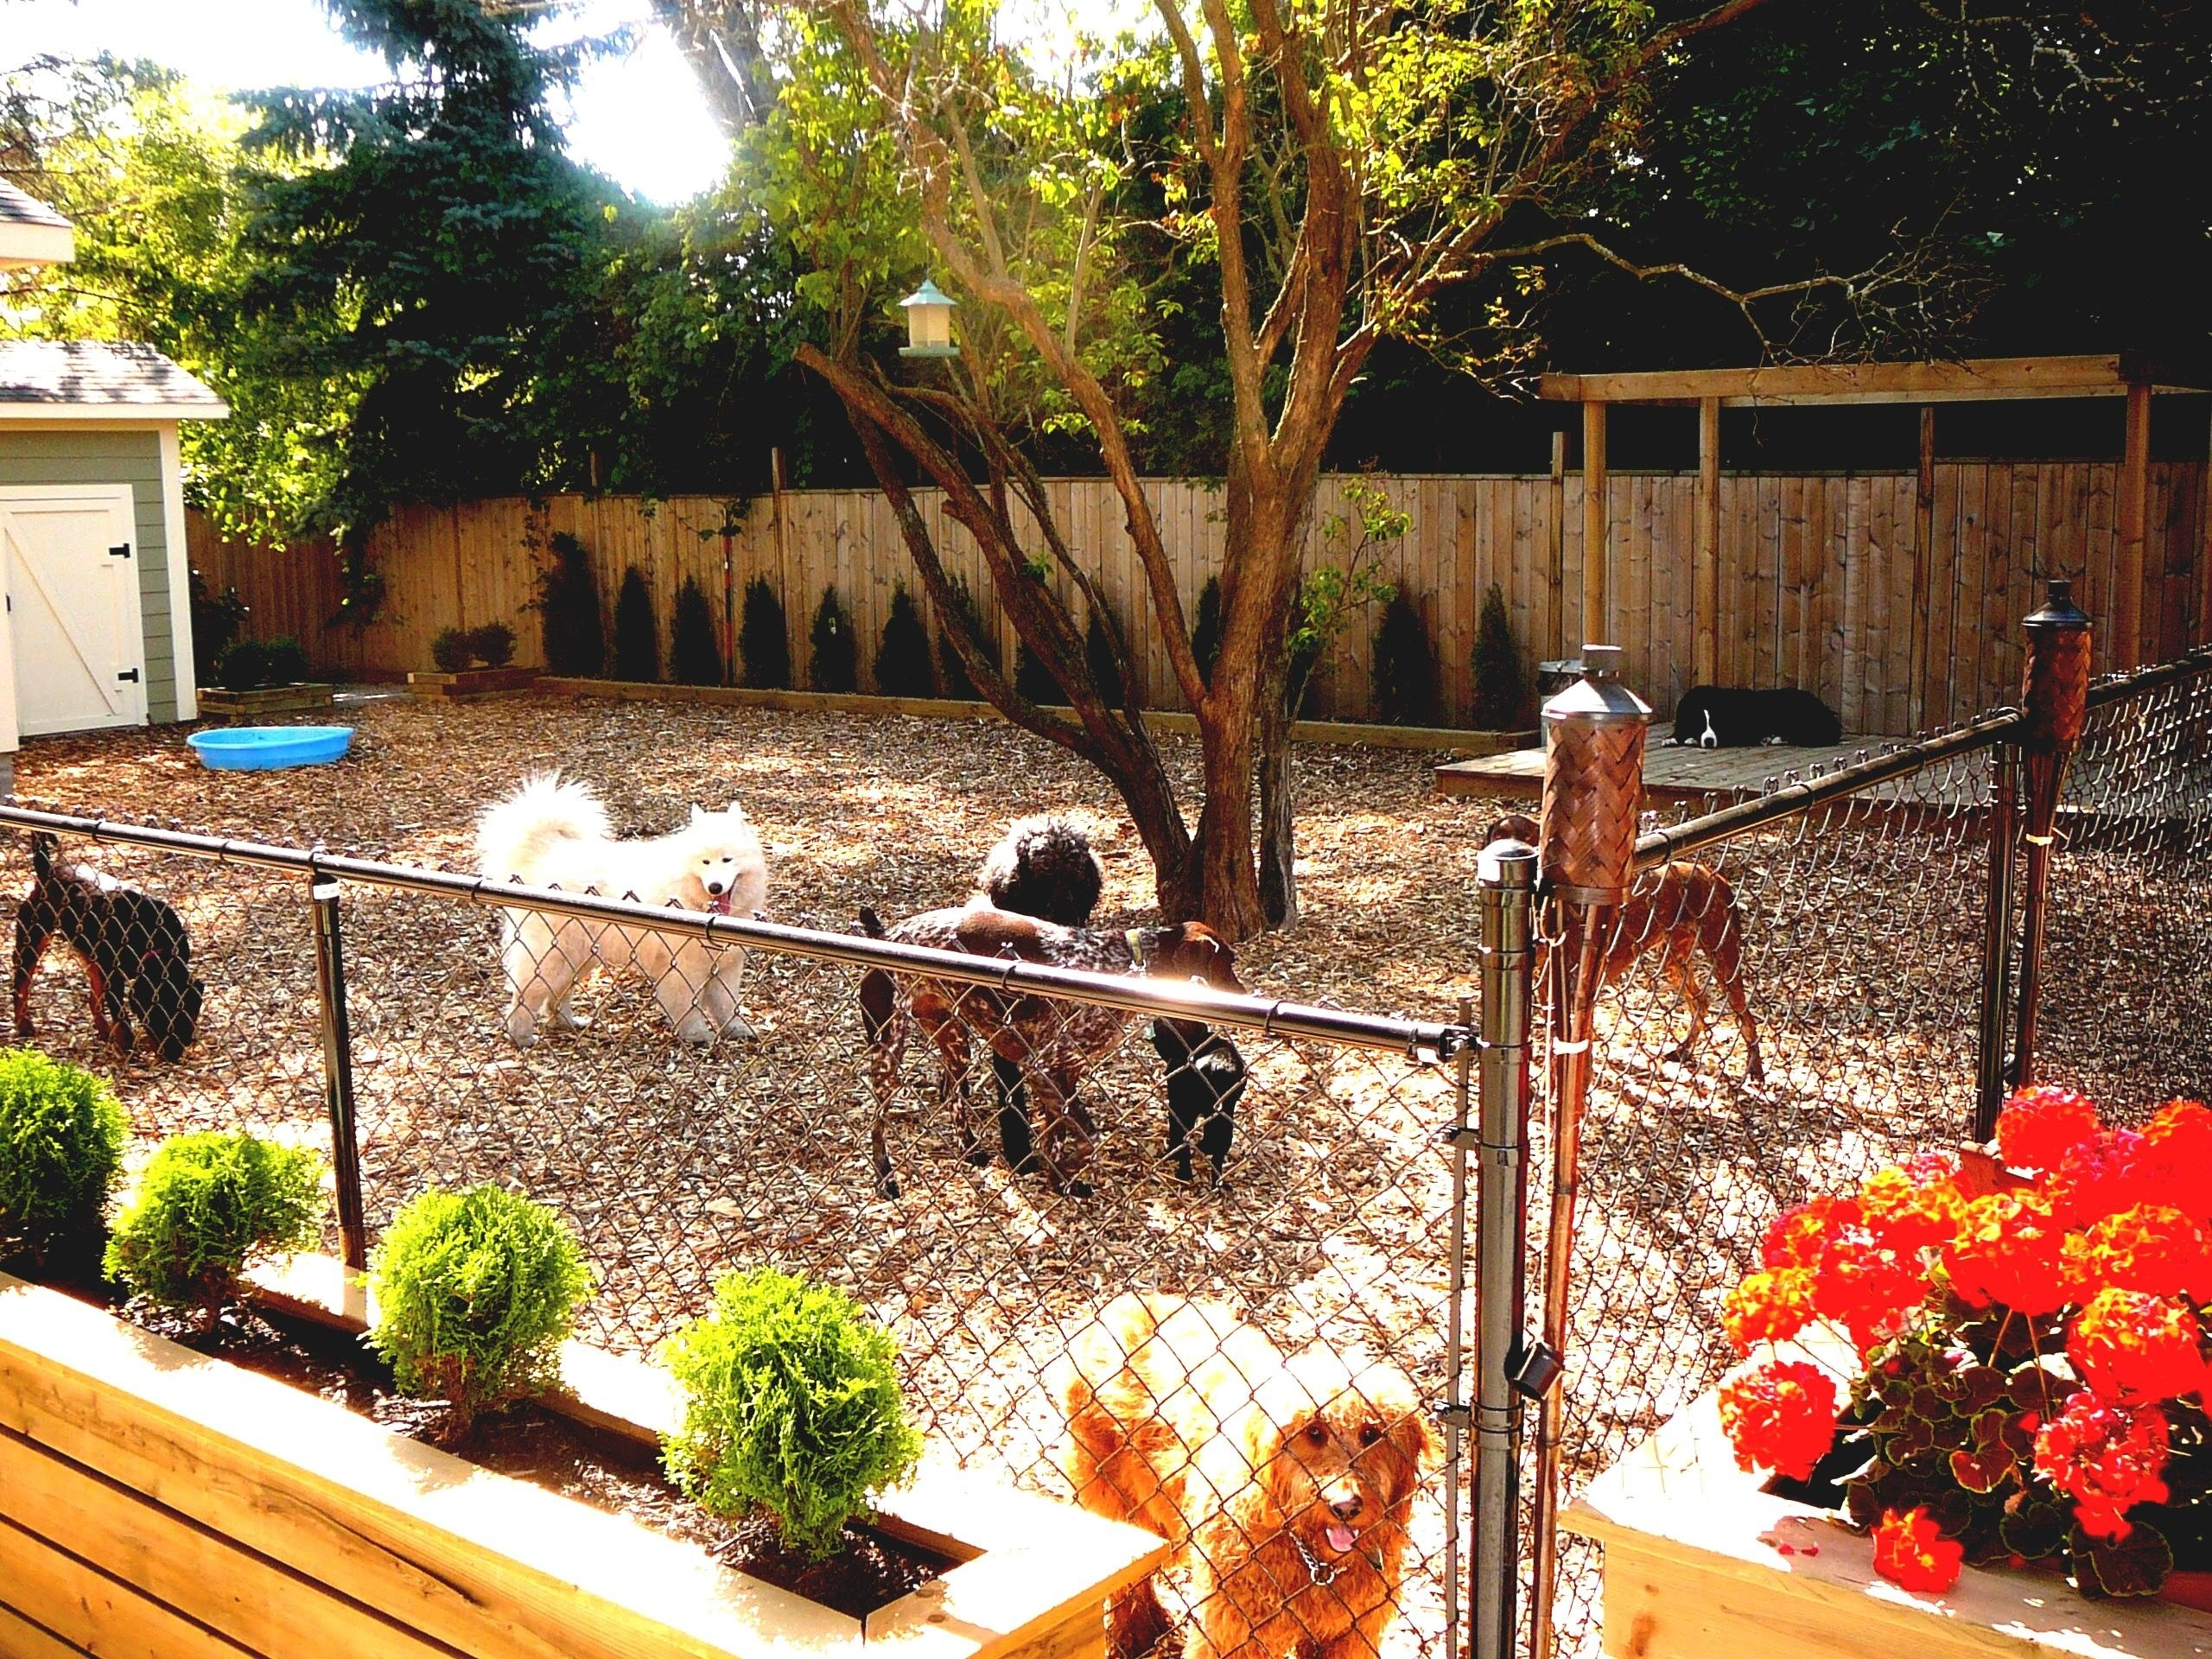 10 Stunning Backyard Landscaping Ideas For Dogs landscaping ideas with dogs in small backyard top on a budget home 2020